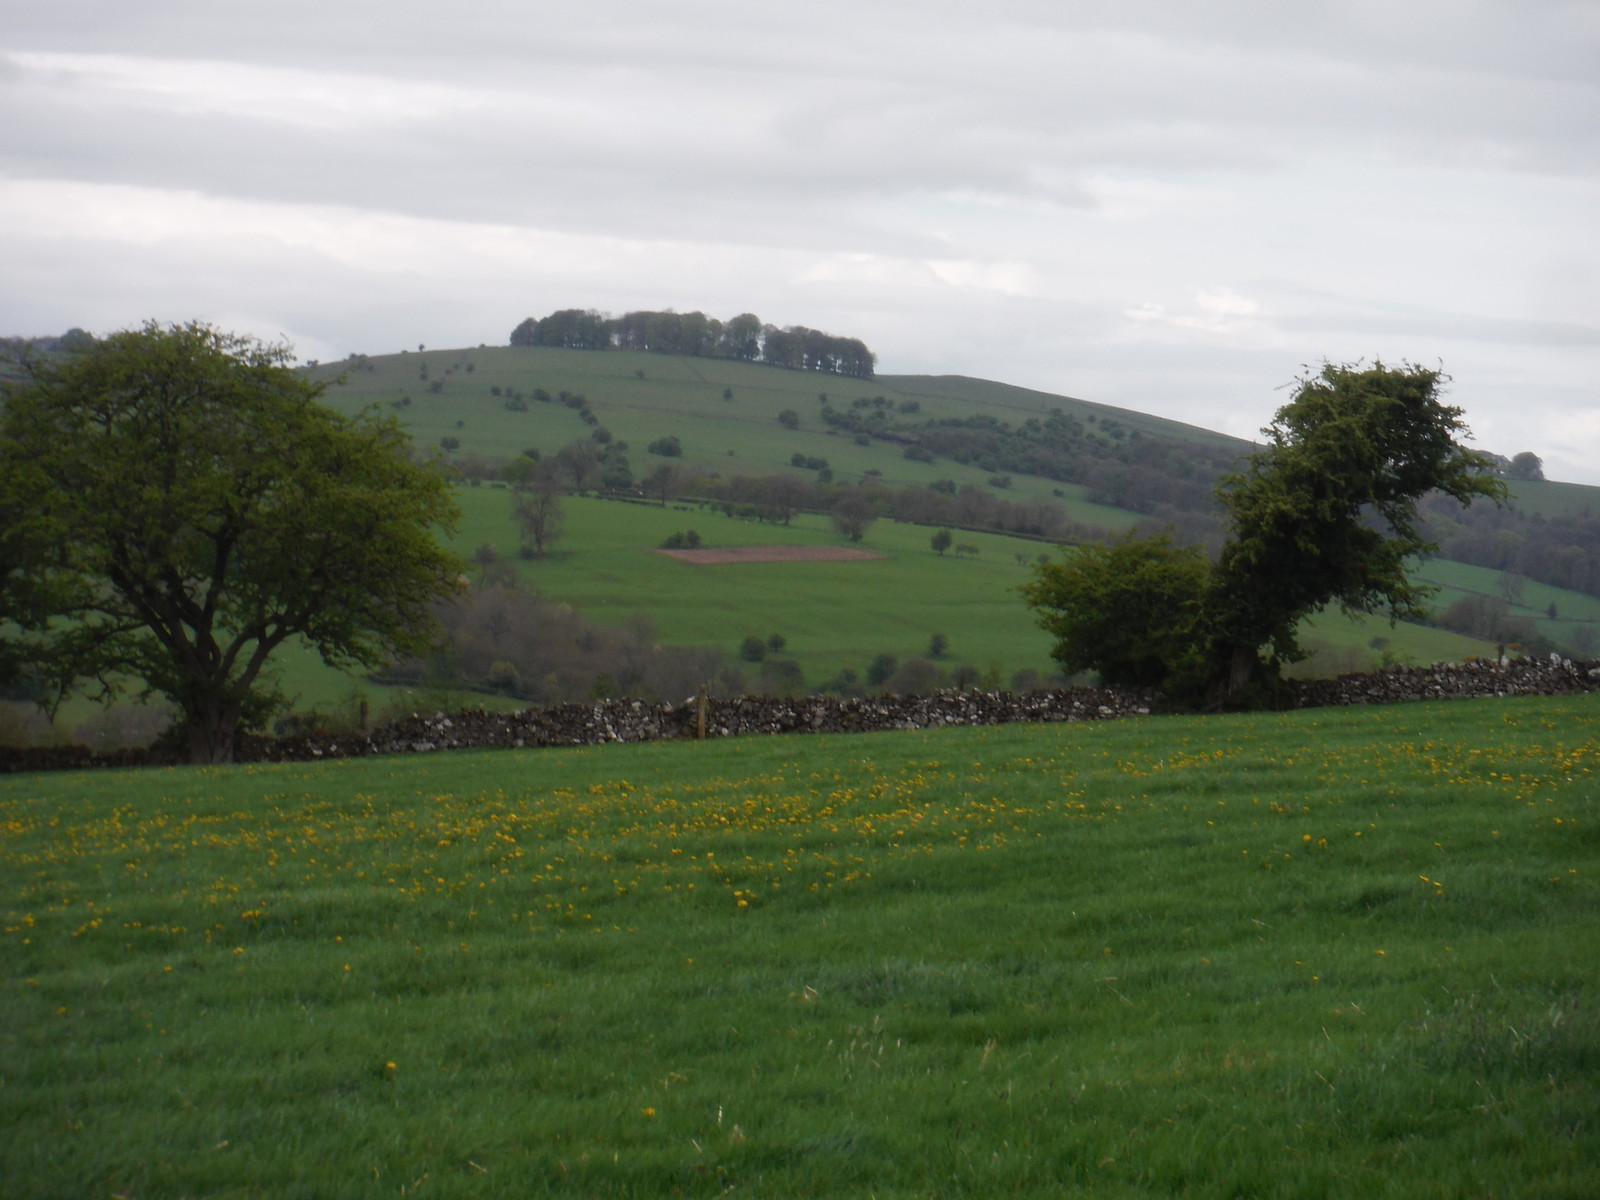 Hazelton Clump from Spend Lane SWC Walk 326 - Dovedale (Ashbourne Circular)